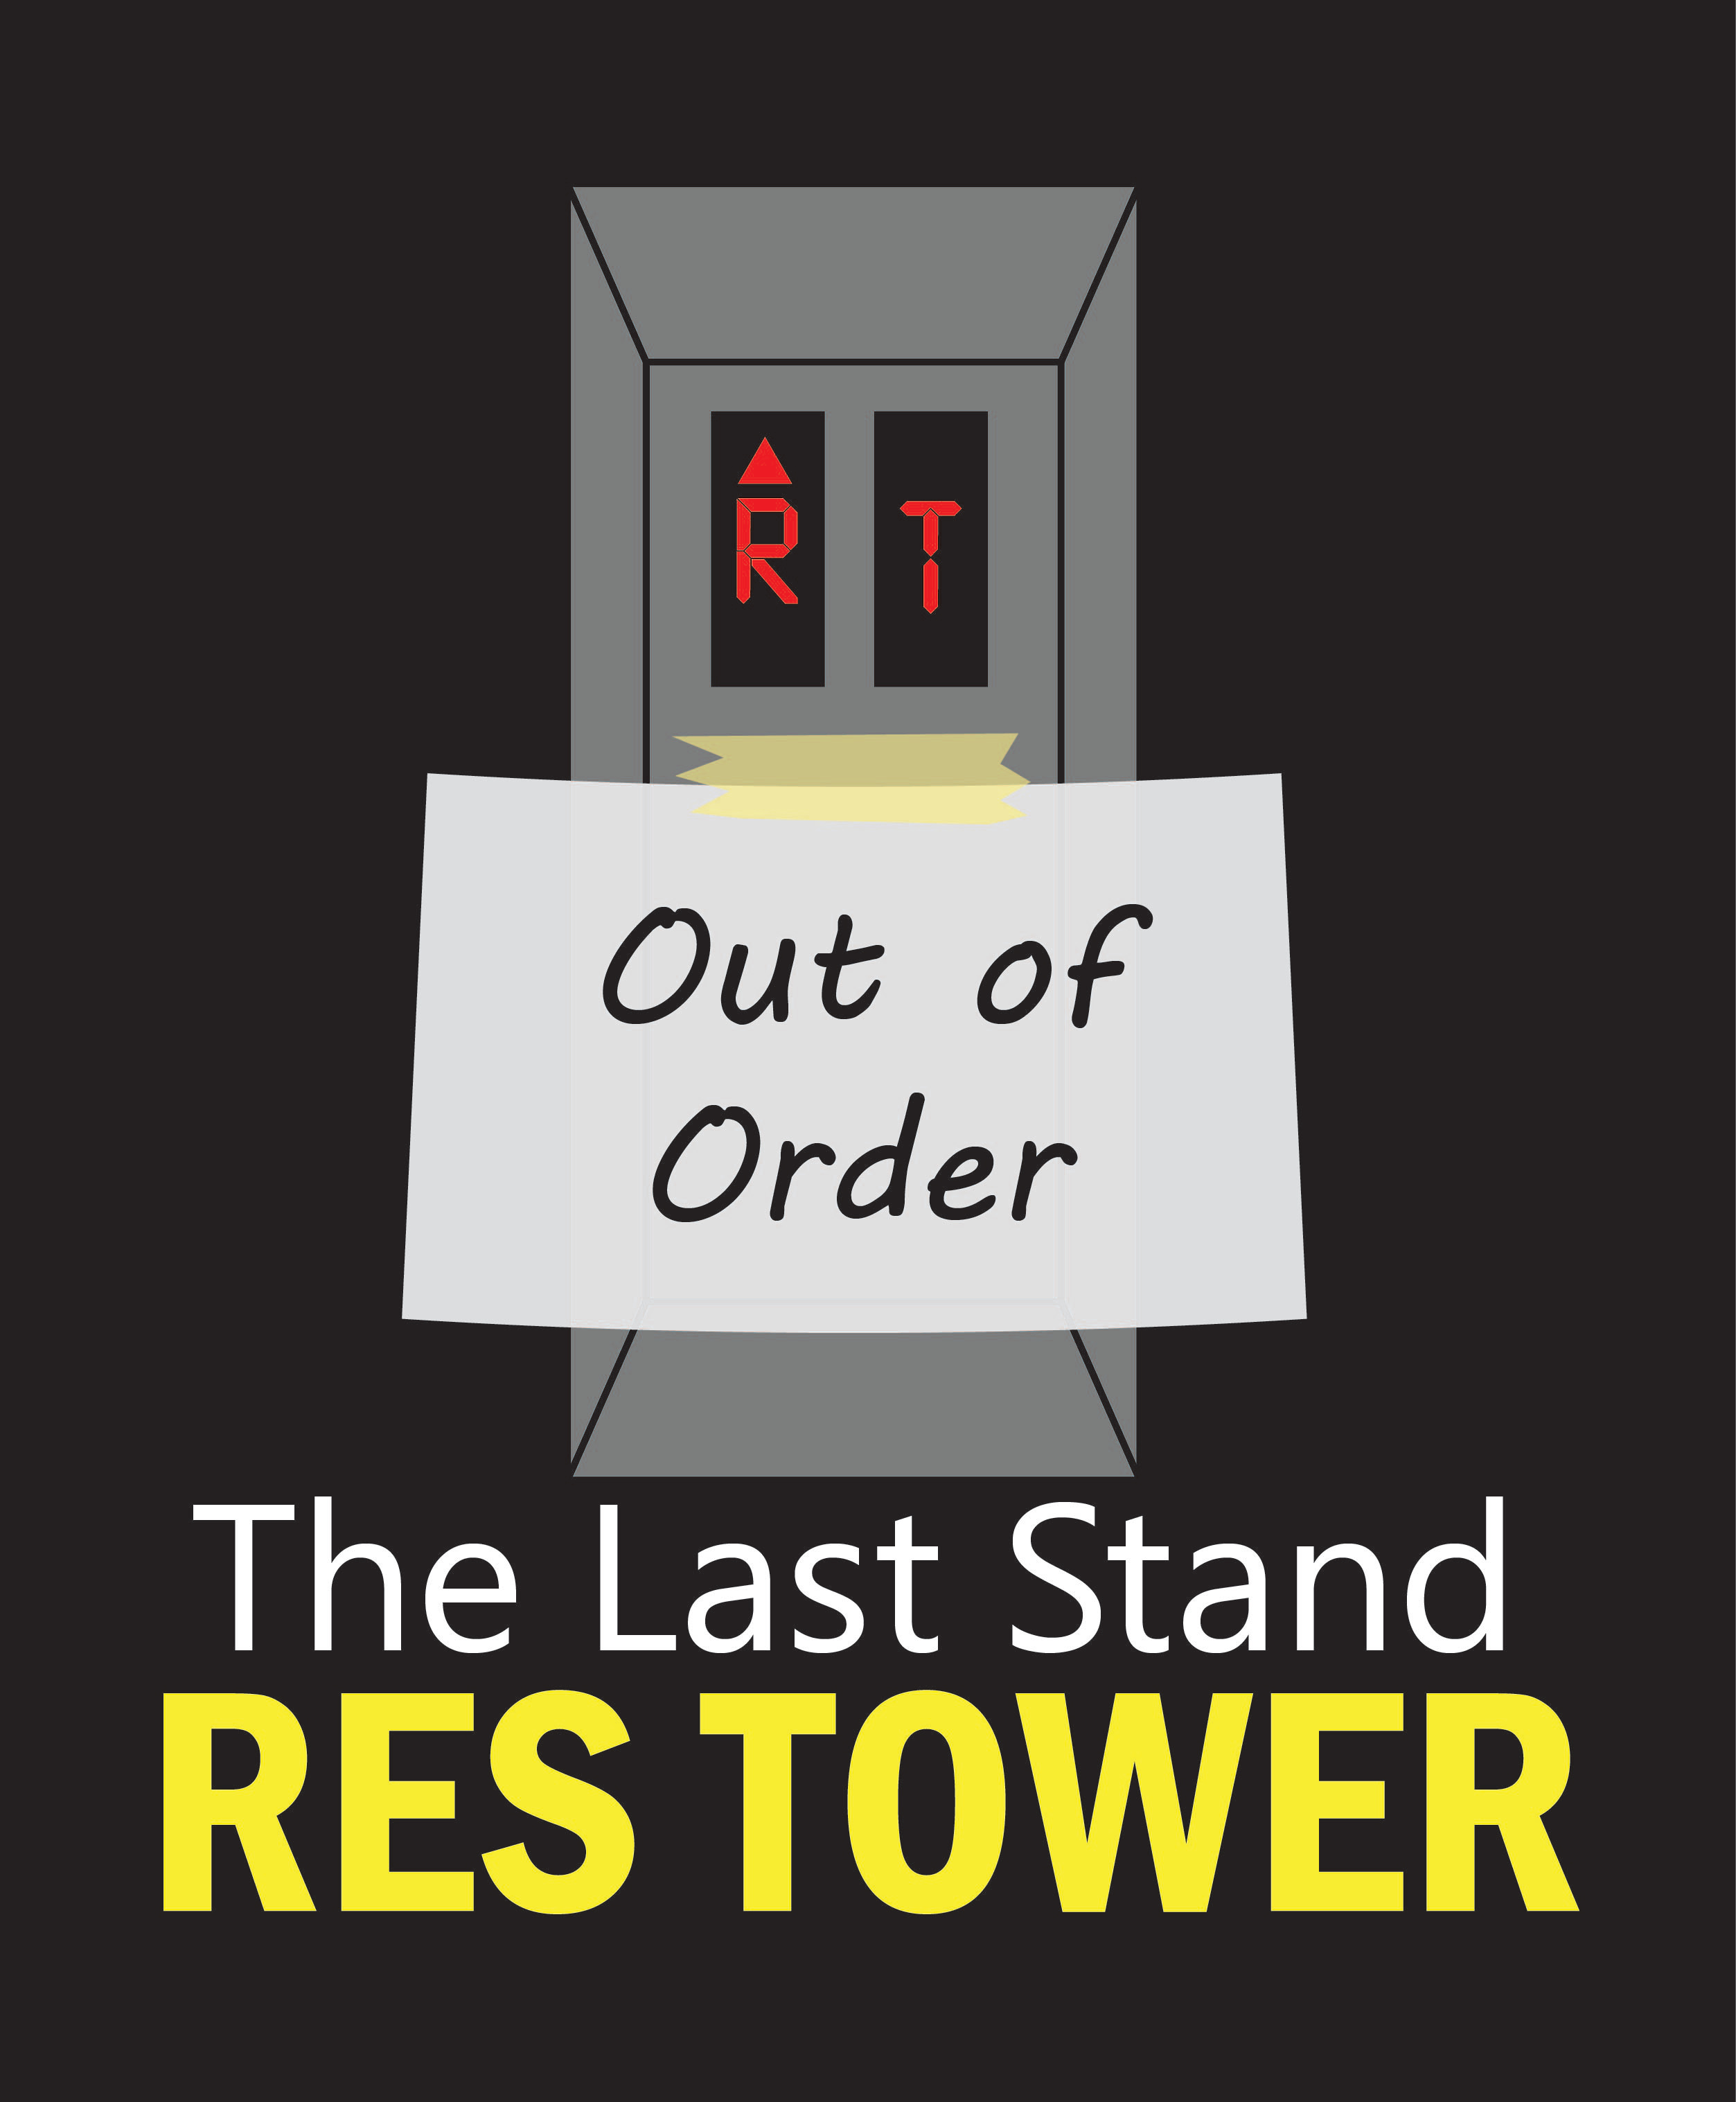 The Last Stand Res Tower